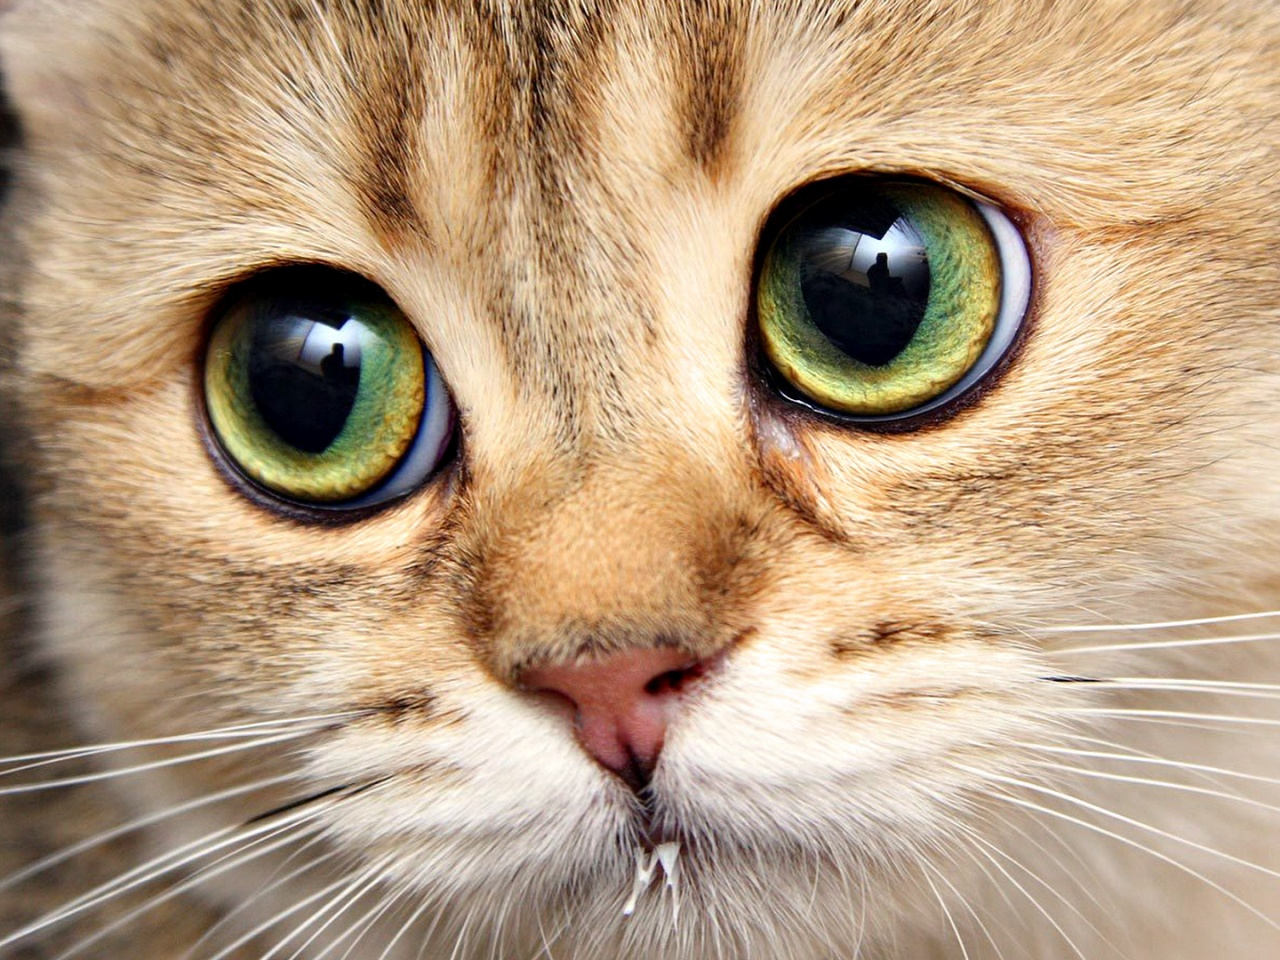 Description: The Wallpaper above is Sad cat eyes Wallpaper in Resolution 1280x960. Choose your Resolution and Download Sad cat eyes Wallpaper